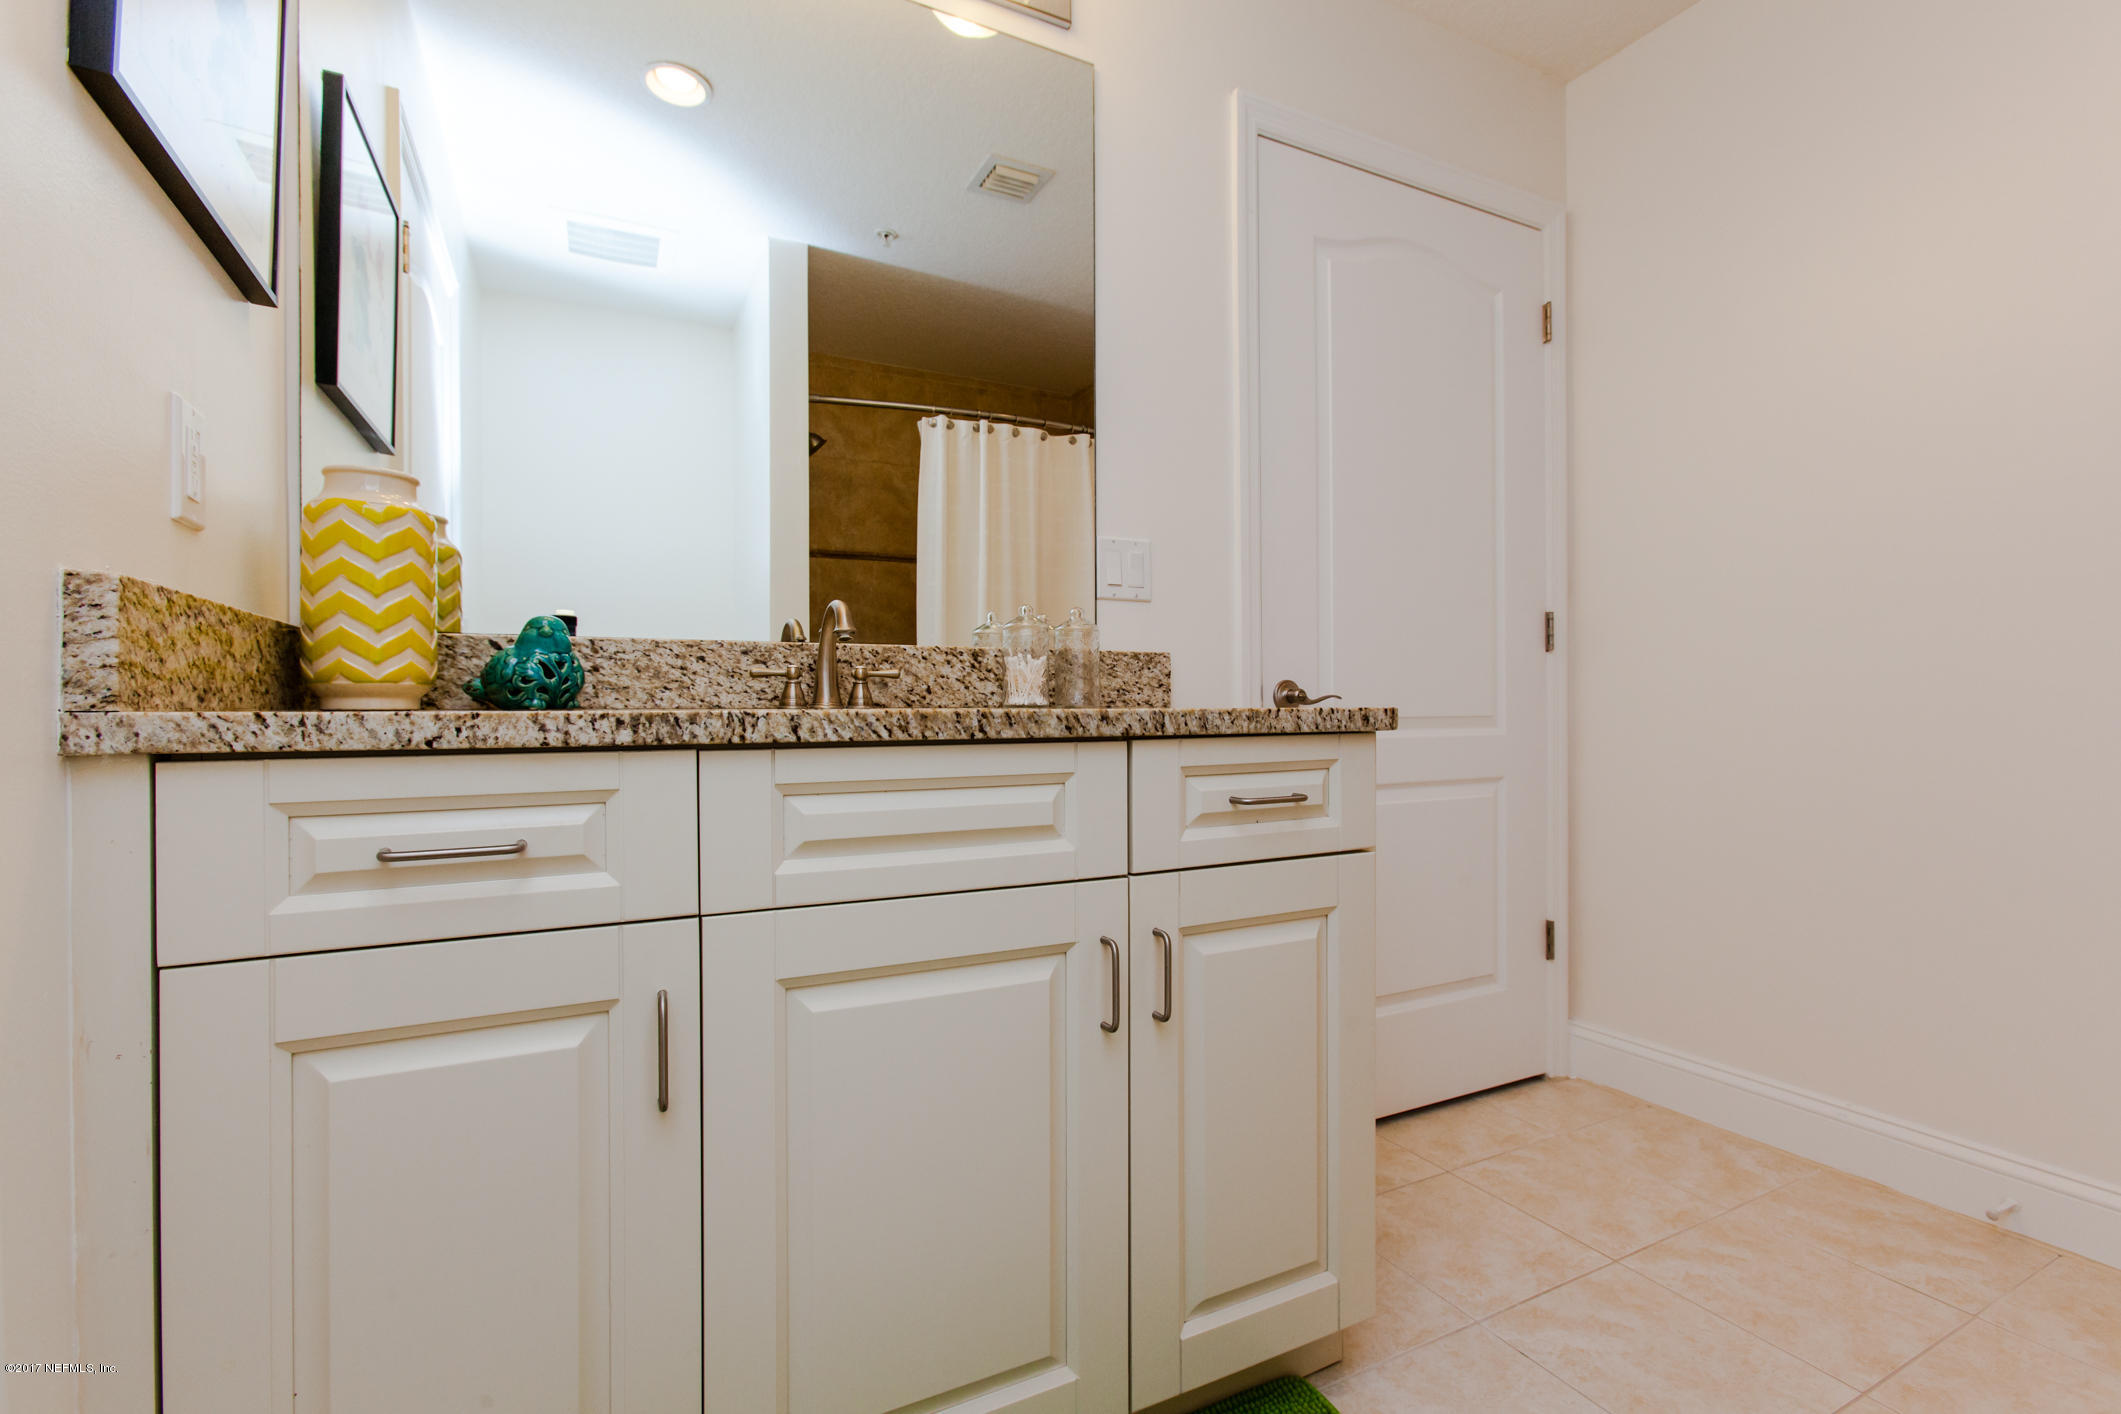 1236 1ST, JACKSONVILLE BEACH, FLORIDA 32250, 2 Bedrooms Bedrooms, ,2 BathroomsBathrooms,Condo,For sale,1ST,1016185